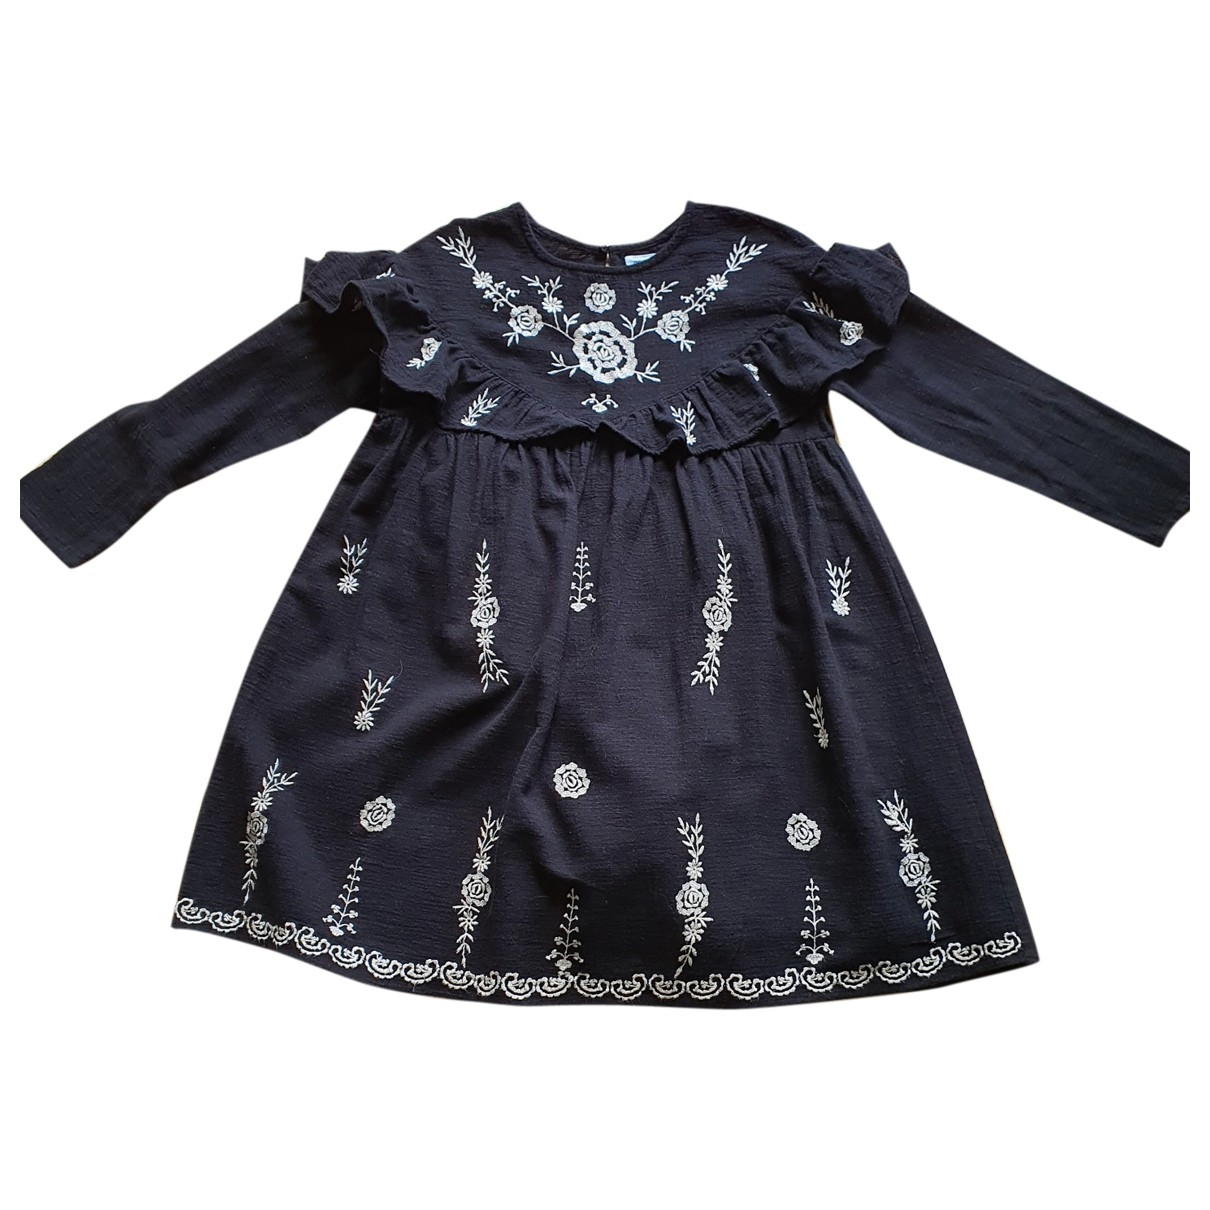 Zara \N Black Cotton dress for Kids 10 years - up to 142cm FR